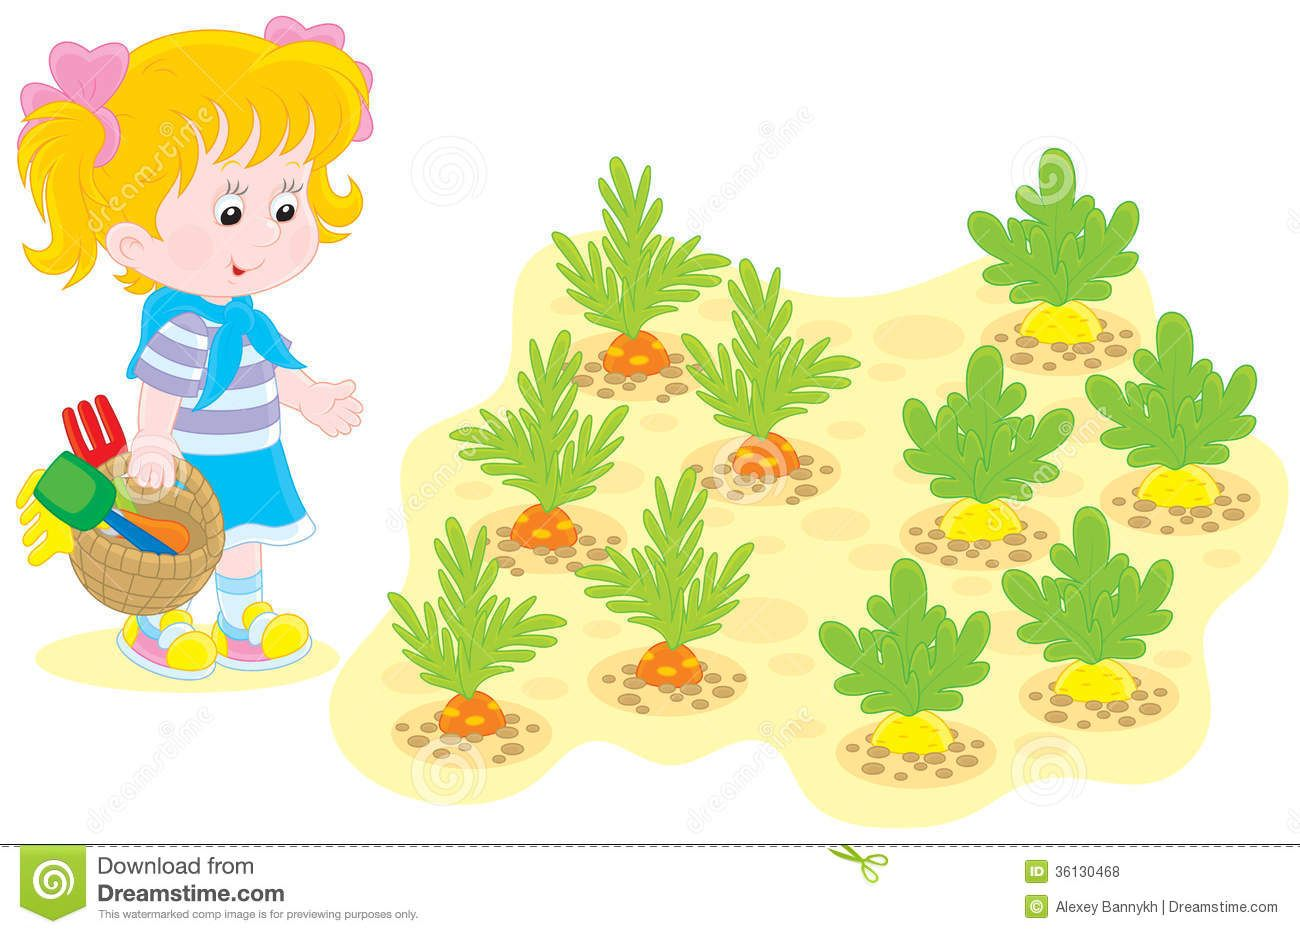 Vegetable garden graphic - Vegetable Garden Graphic With Vegetable Garden Clipart Kids Garden Clipart